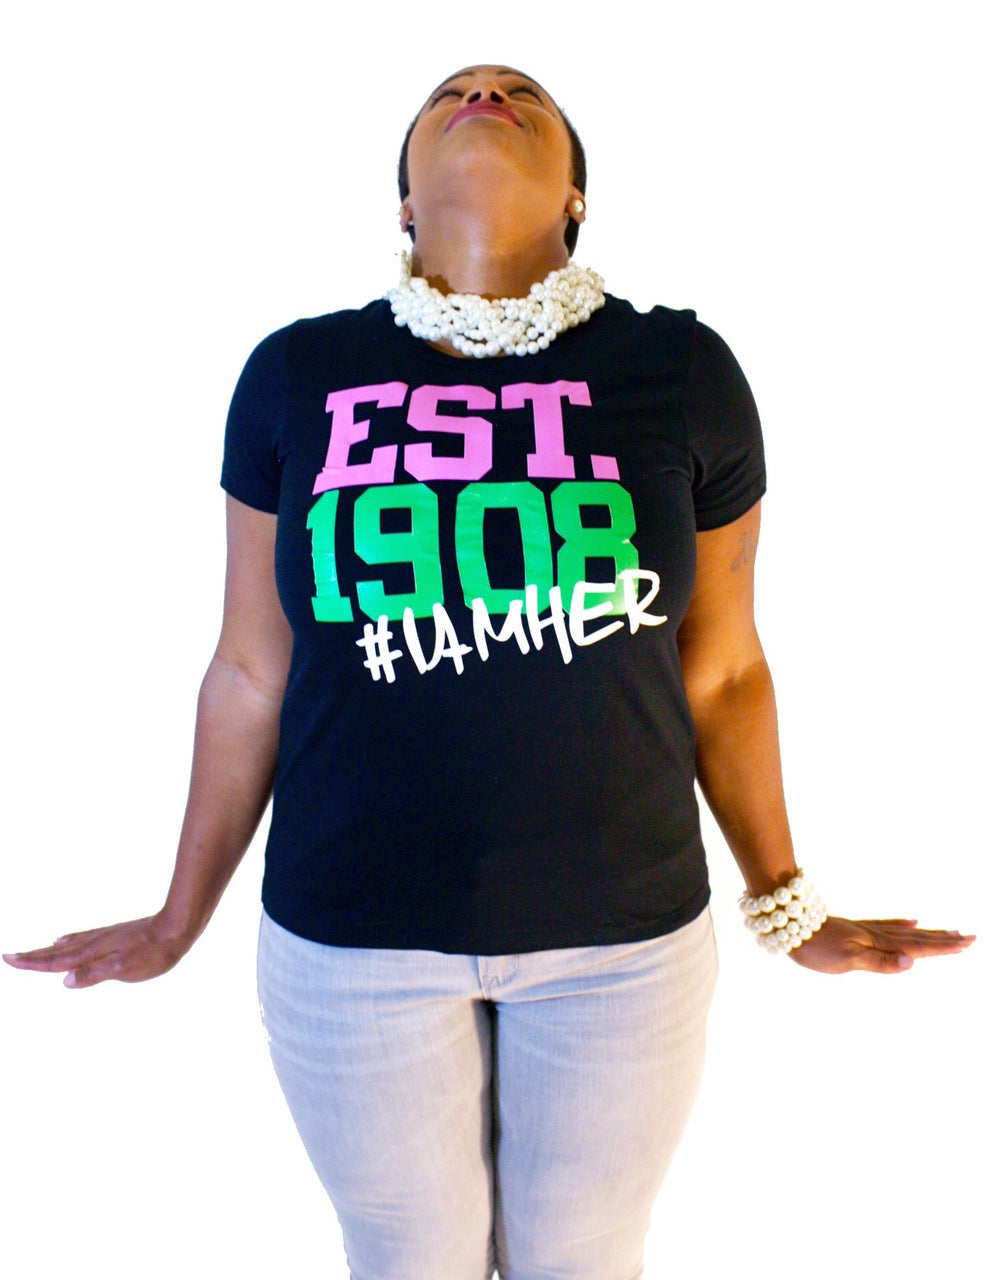 Black female wearing Black Graphic Tee for women with saying, EST. 1908 #IAMHER designed for sisters of Alpha Kappa Alpha.